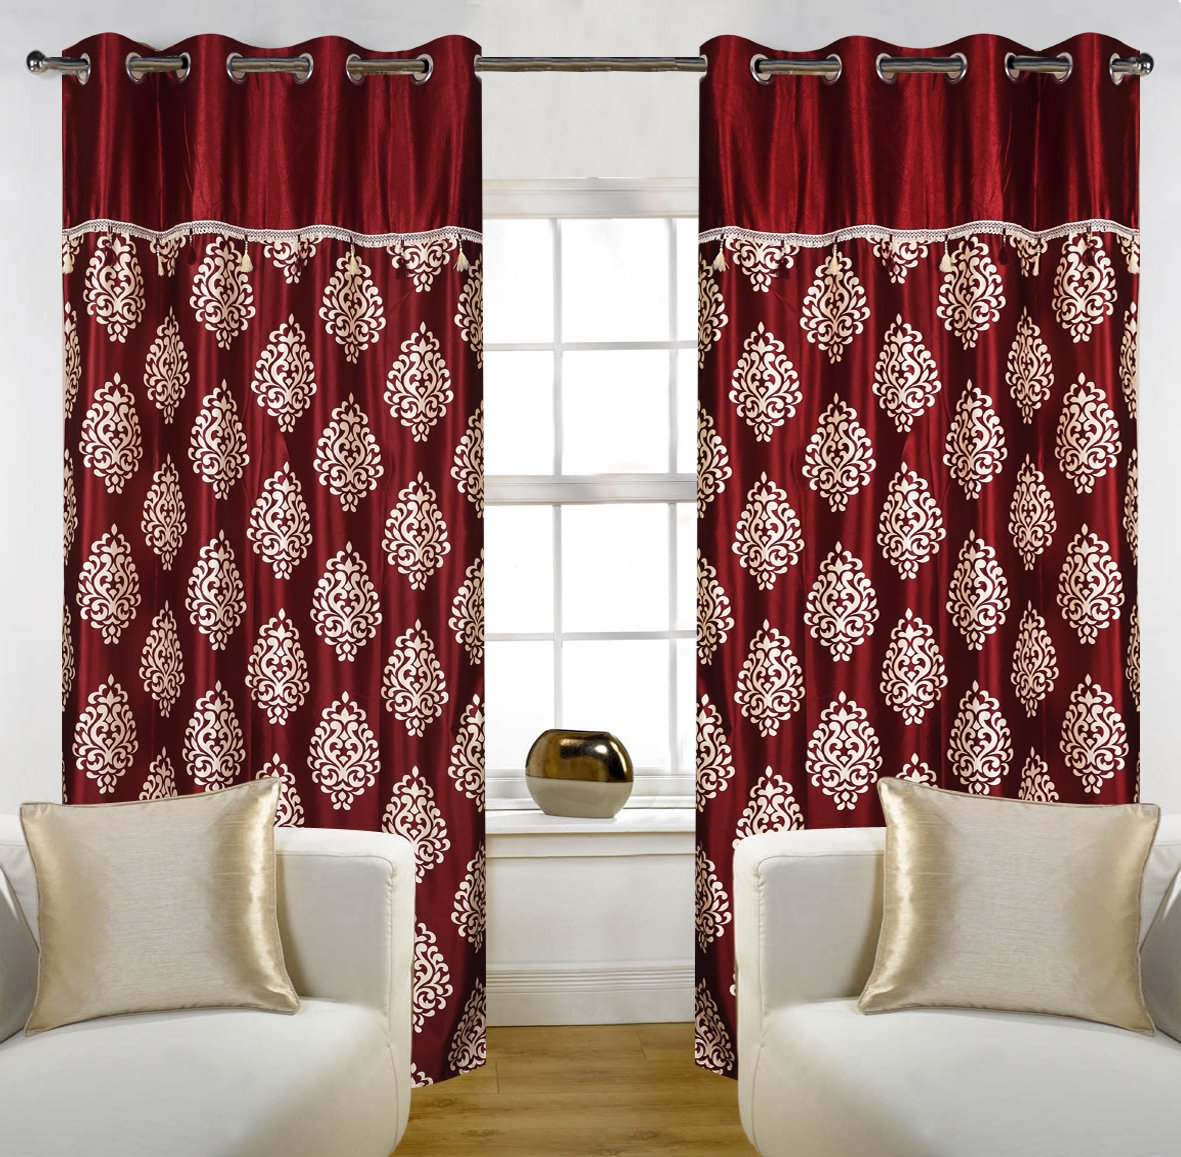 sale luxury on curtains to ready price bargain cheap at pin free curtain made quality buy where